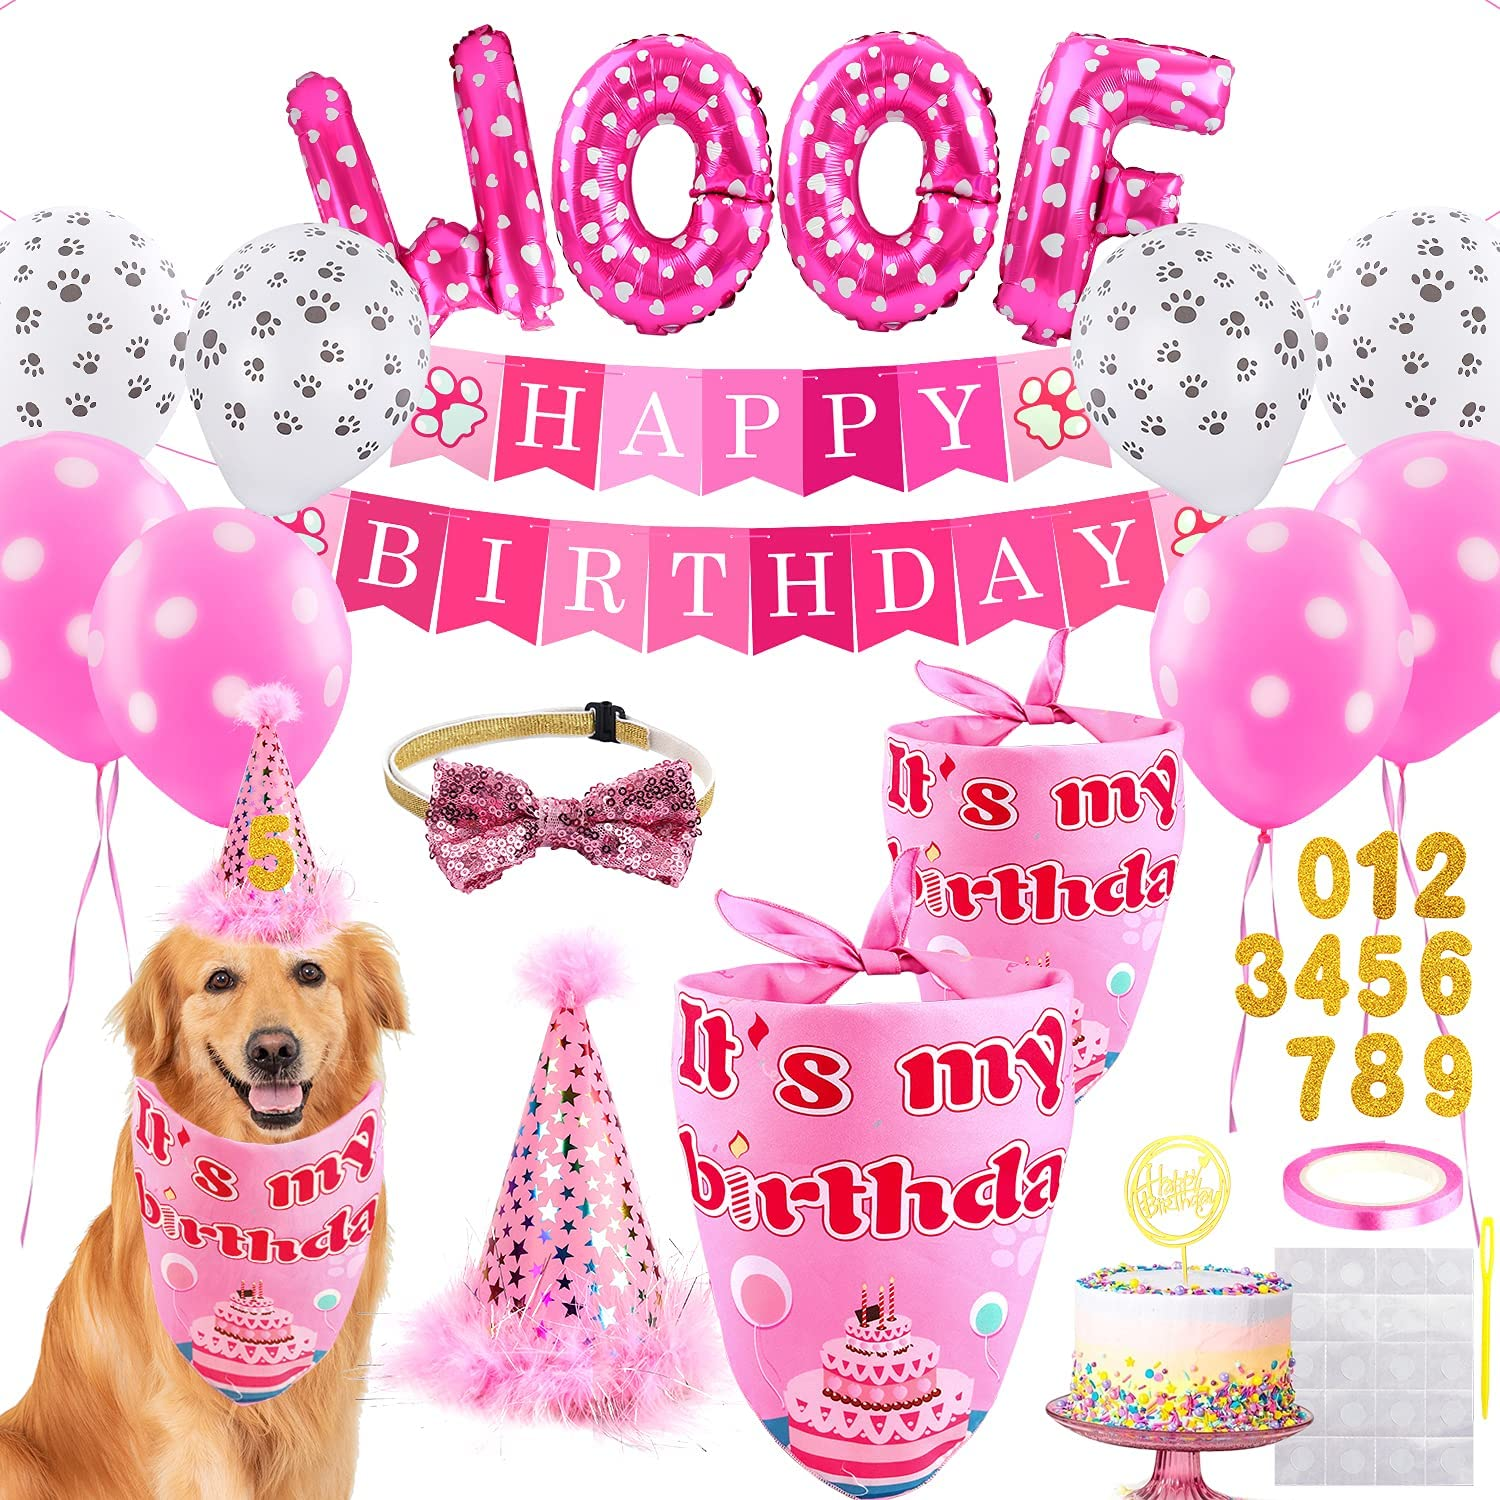 Dogs' Supplies for Birthday Blue Credence or Bandanas Pink Ballo Popularity Hats Pet